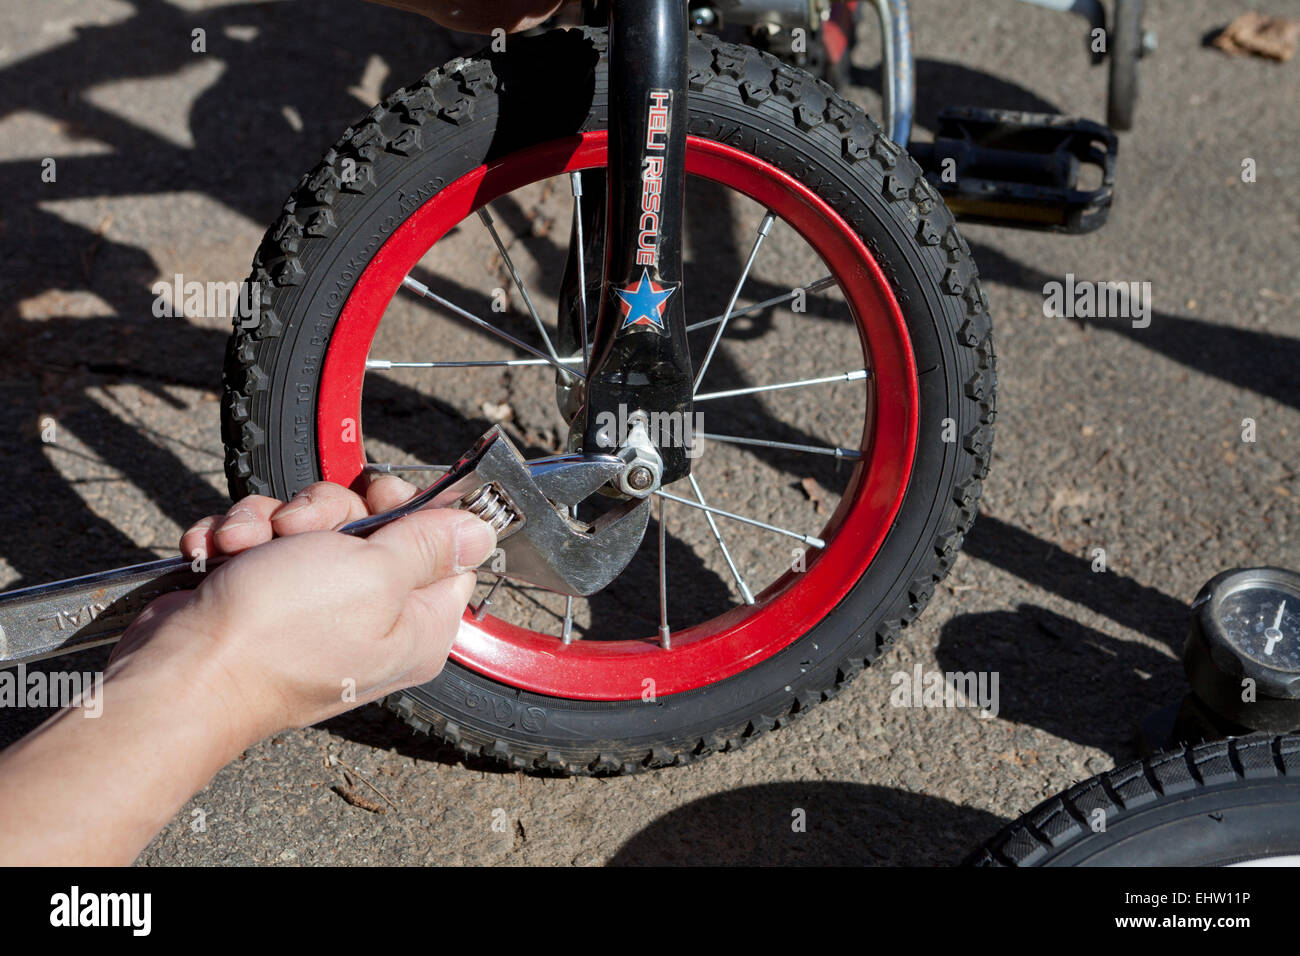 Man removing child's bicycle wheel using crescent wrench - USA - Stock Image